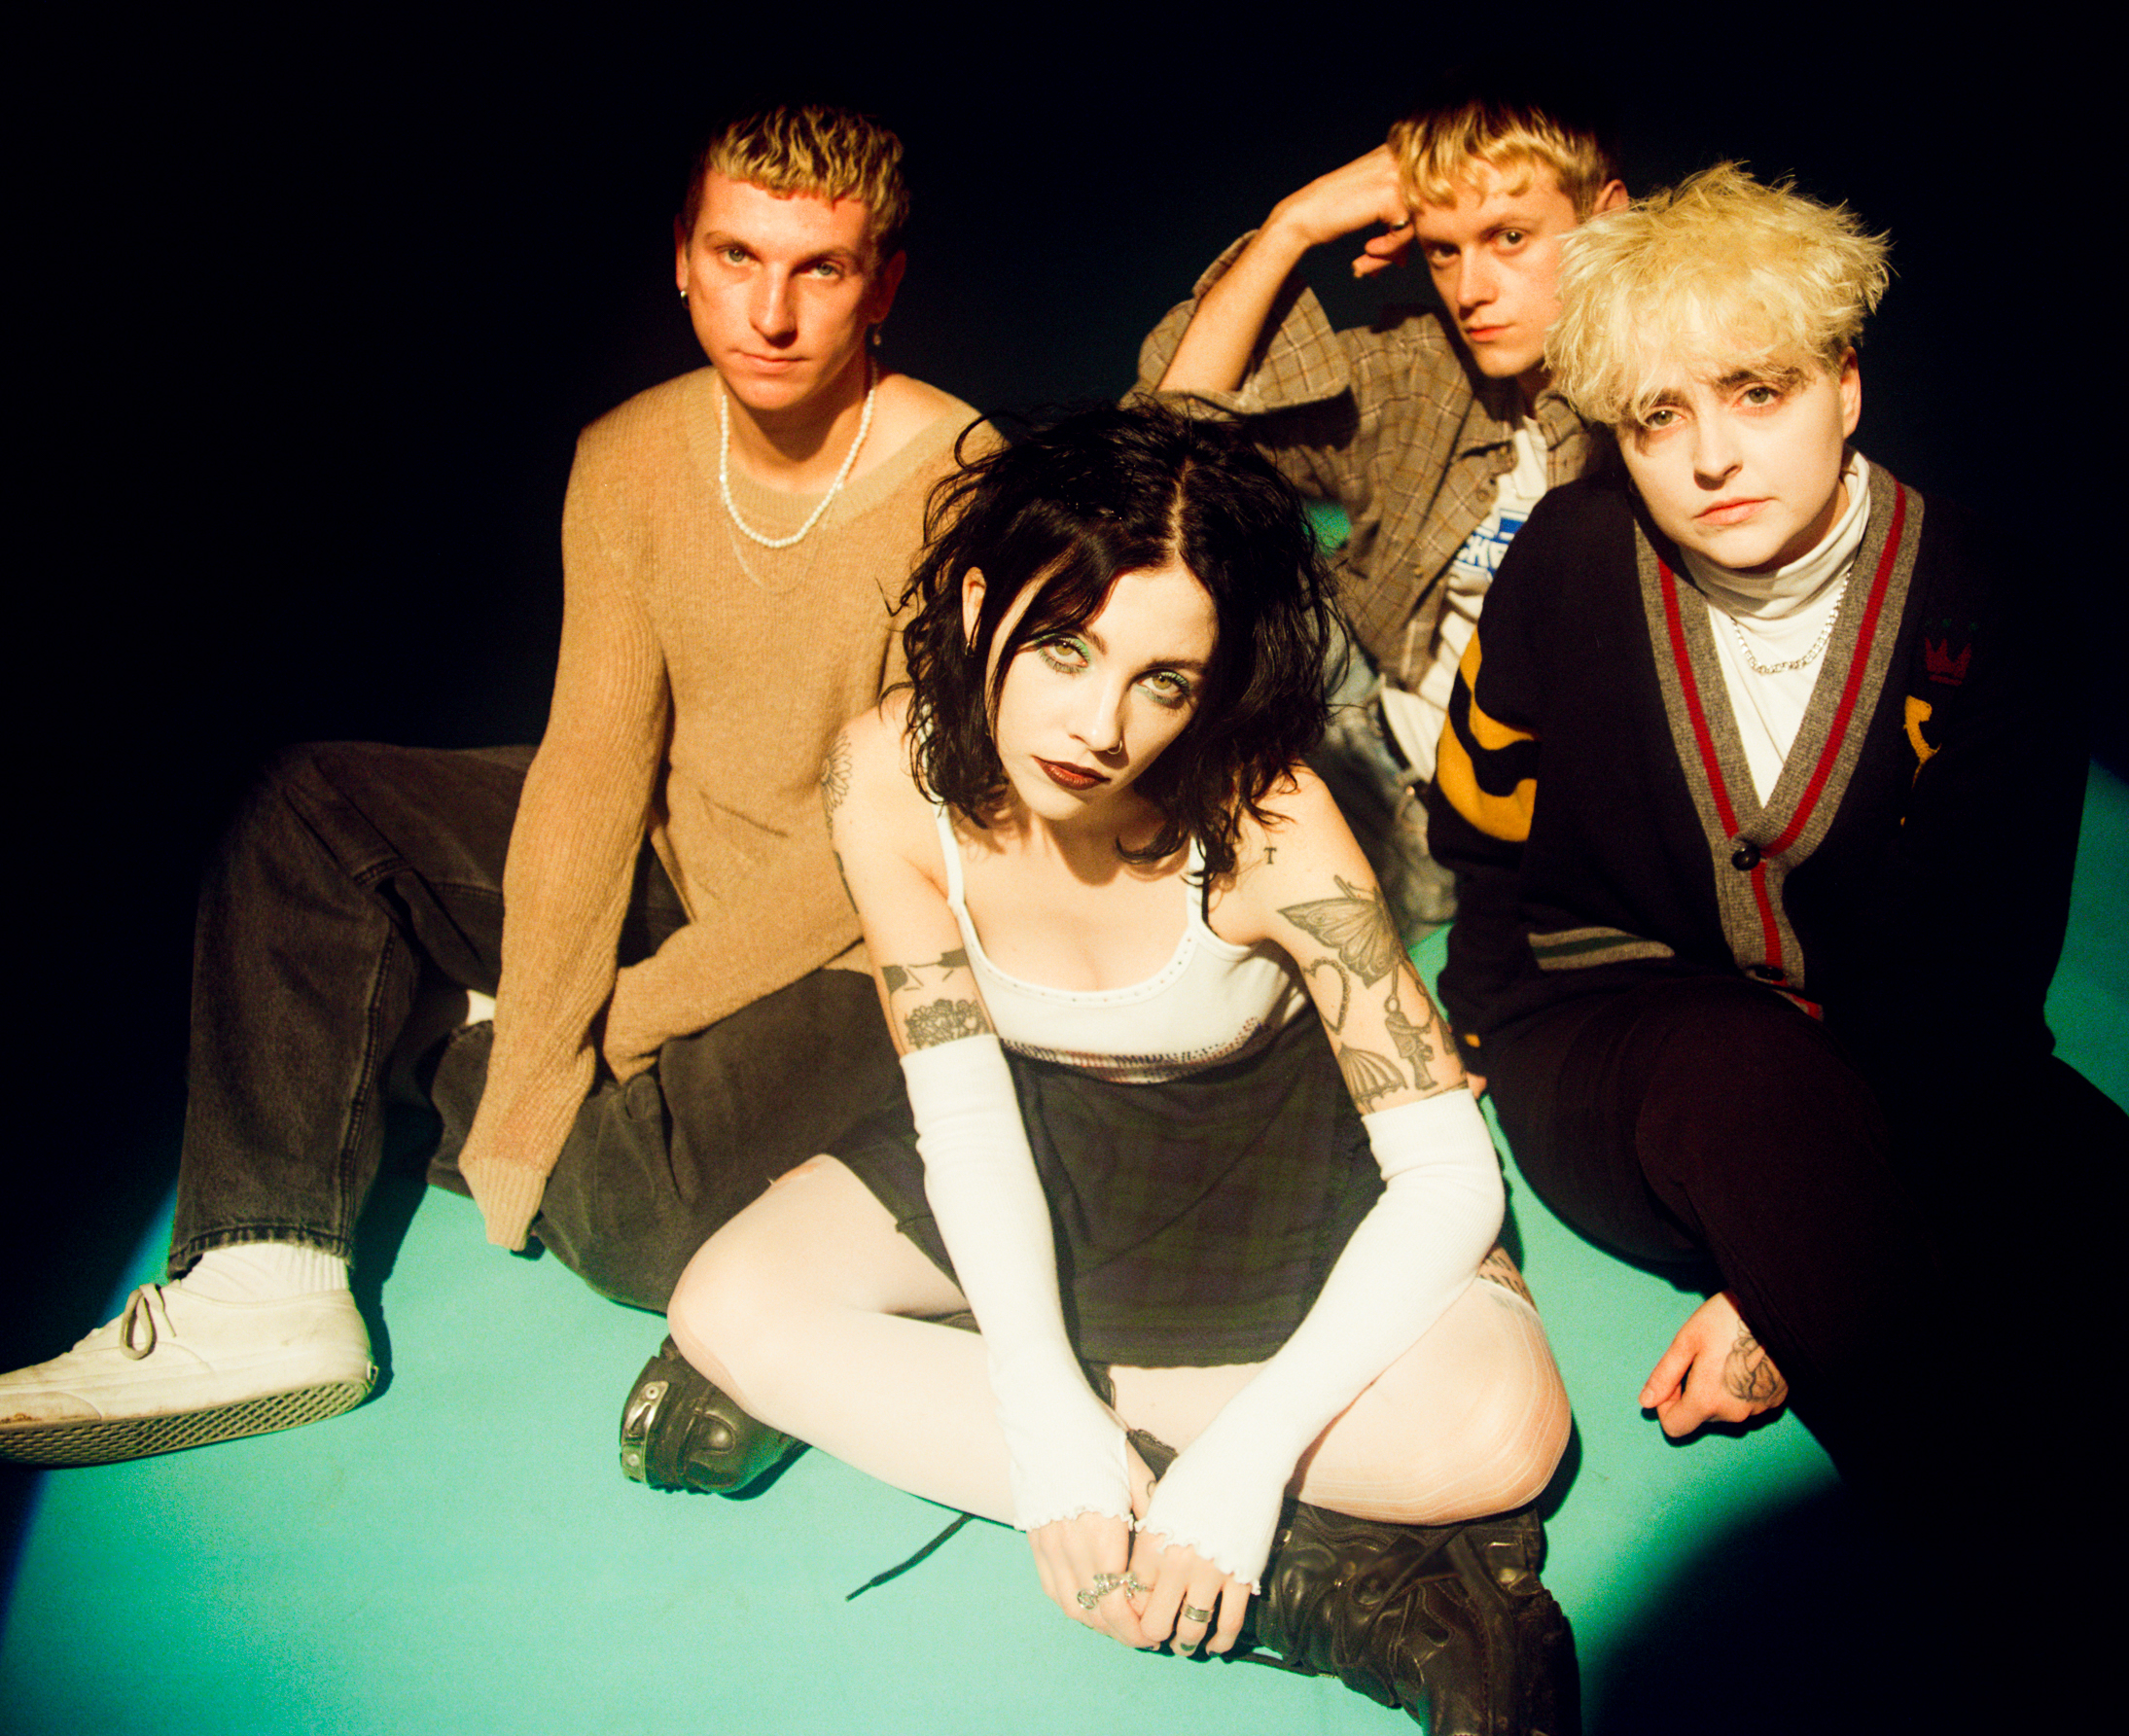 FEATURE: Pale Waves Is Ready To Show You More of Who They Are